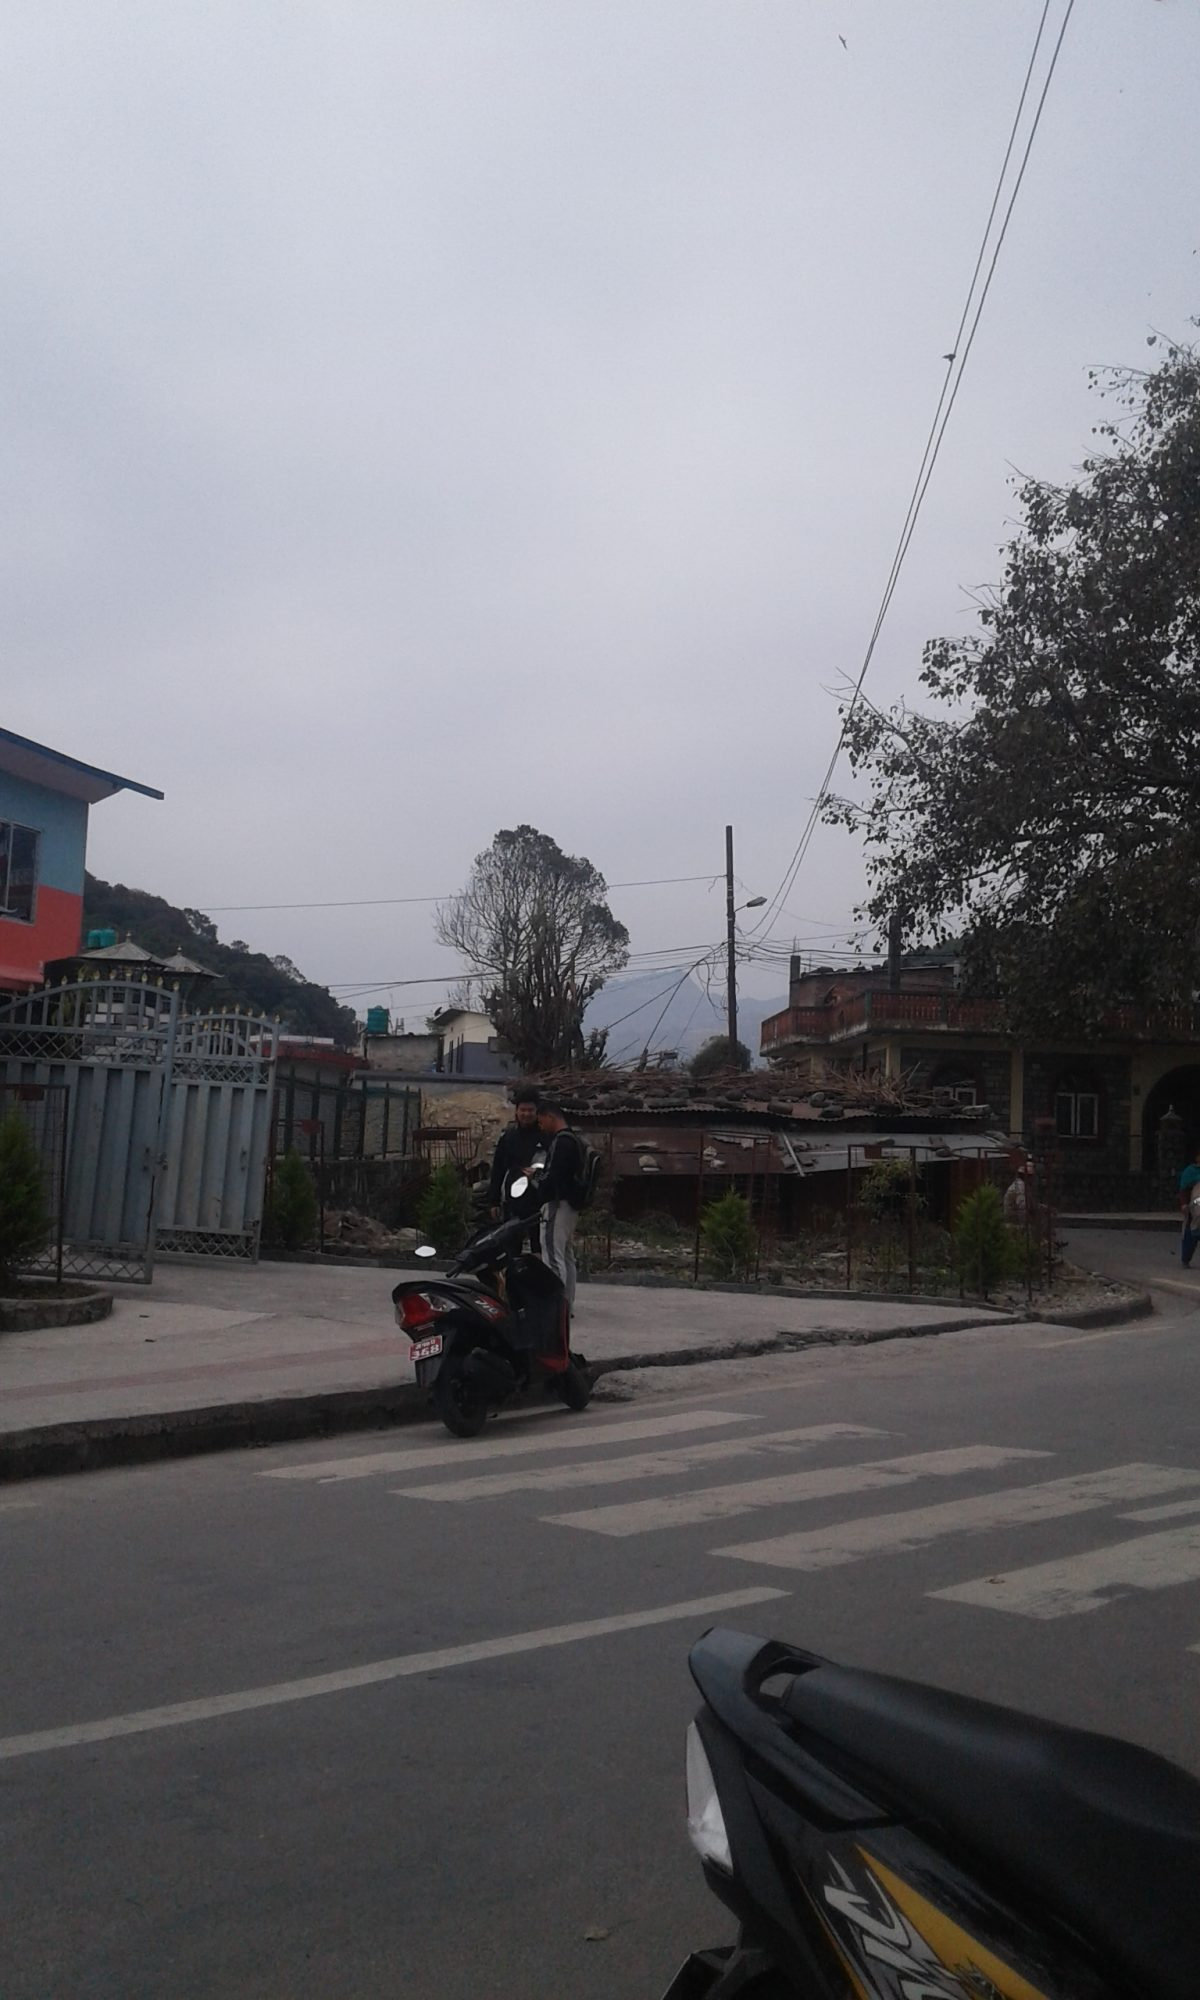 Bad weather Today in Pokhara